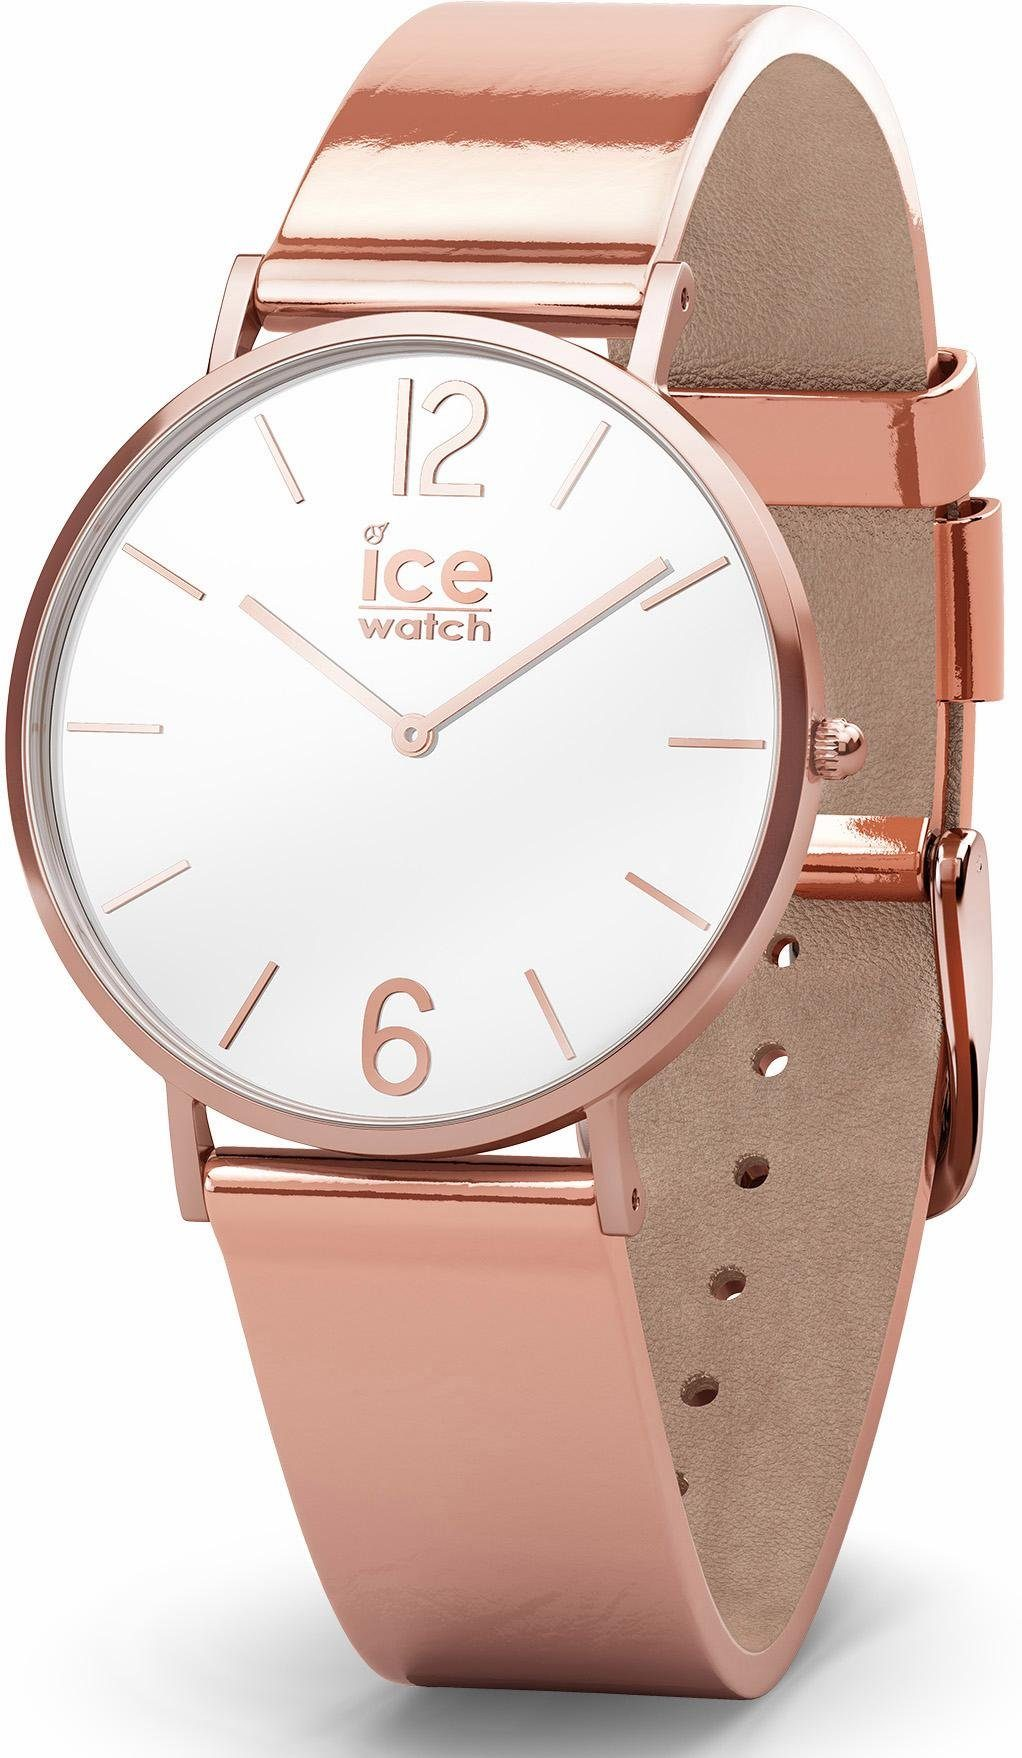 ice-watch Quarzuhr »CITY sparkling - Metal Rosegold - Small - 2H, 015091«